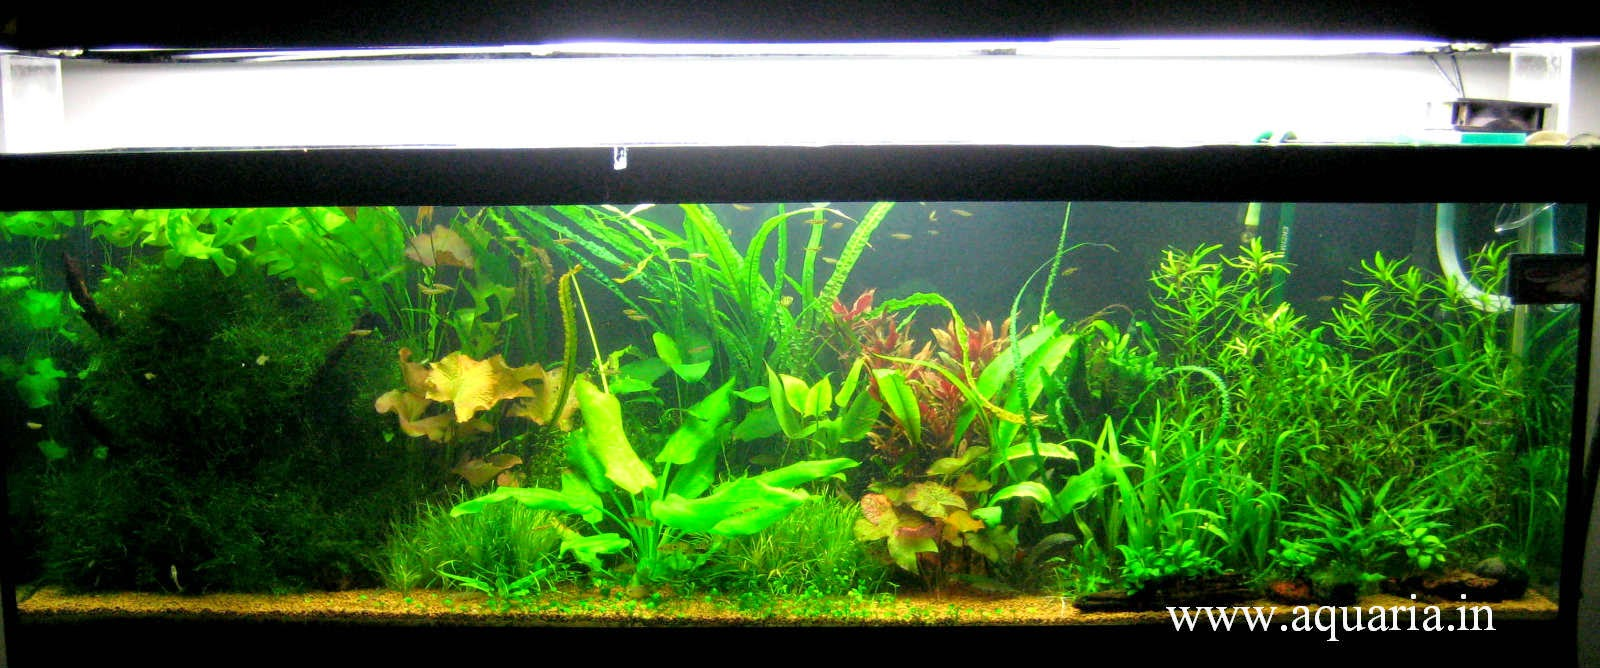 Aquarium fish tank in chennai - Http Www Aquaria In